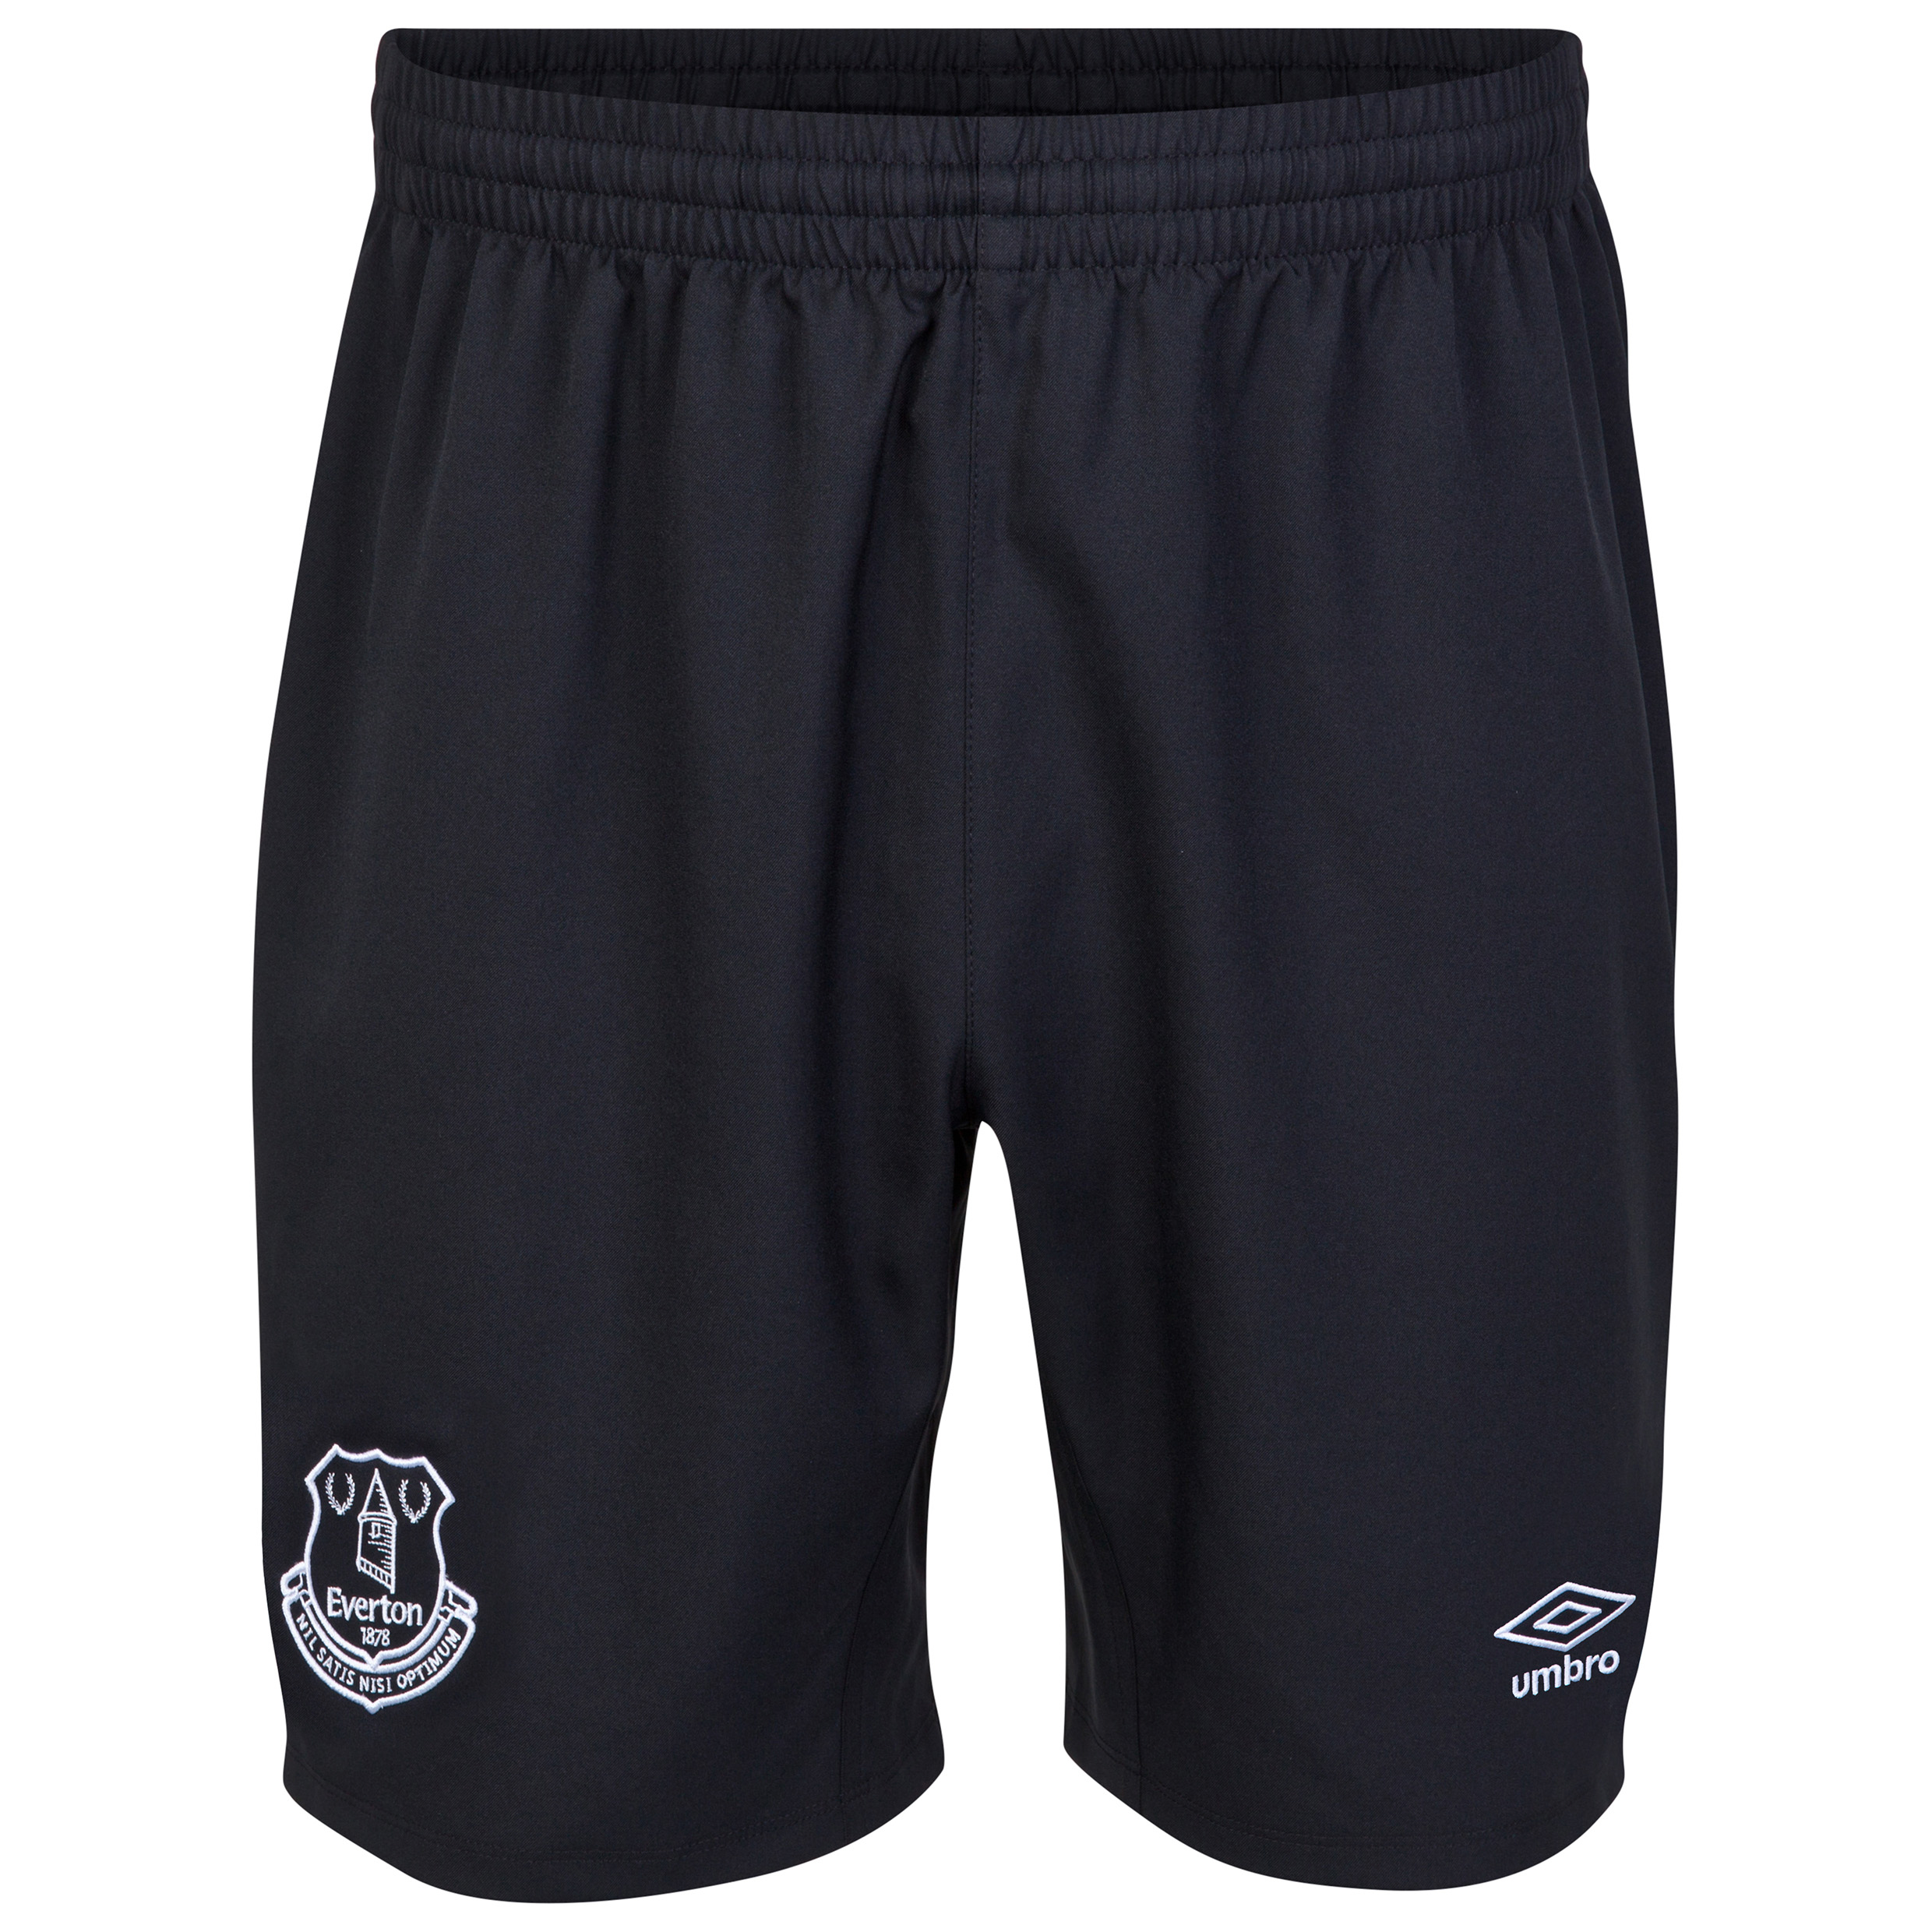 Everton Away Short 2014/15